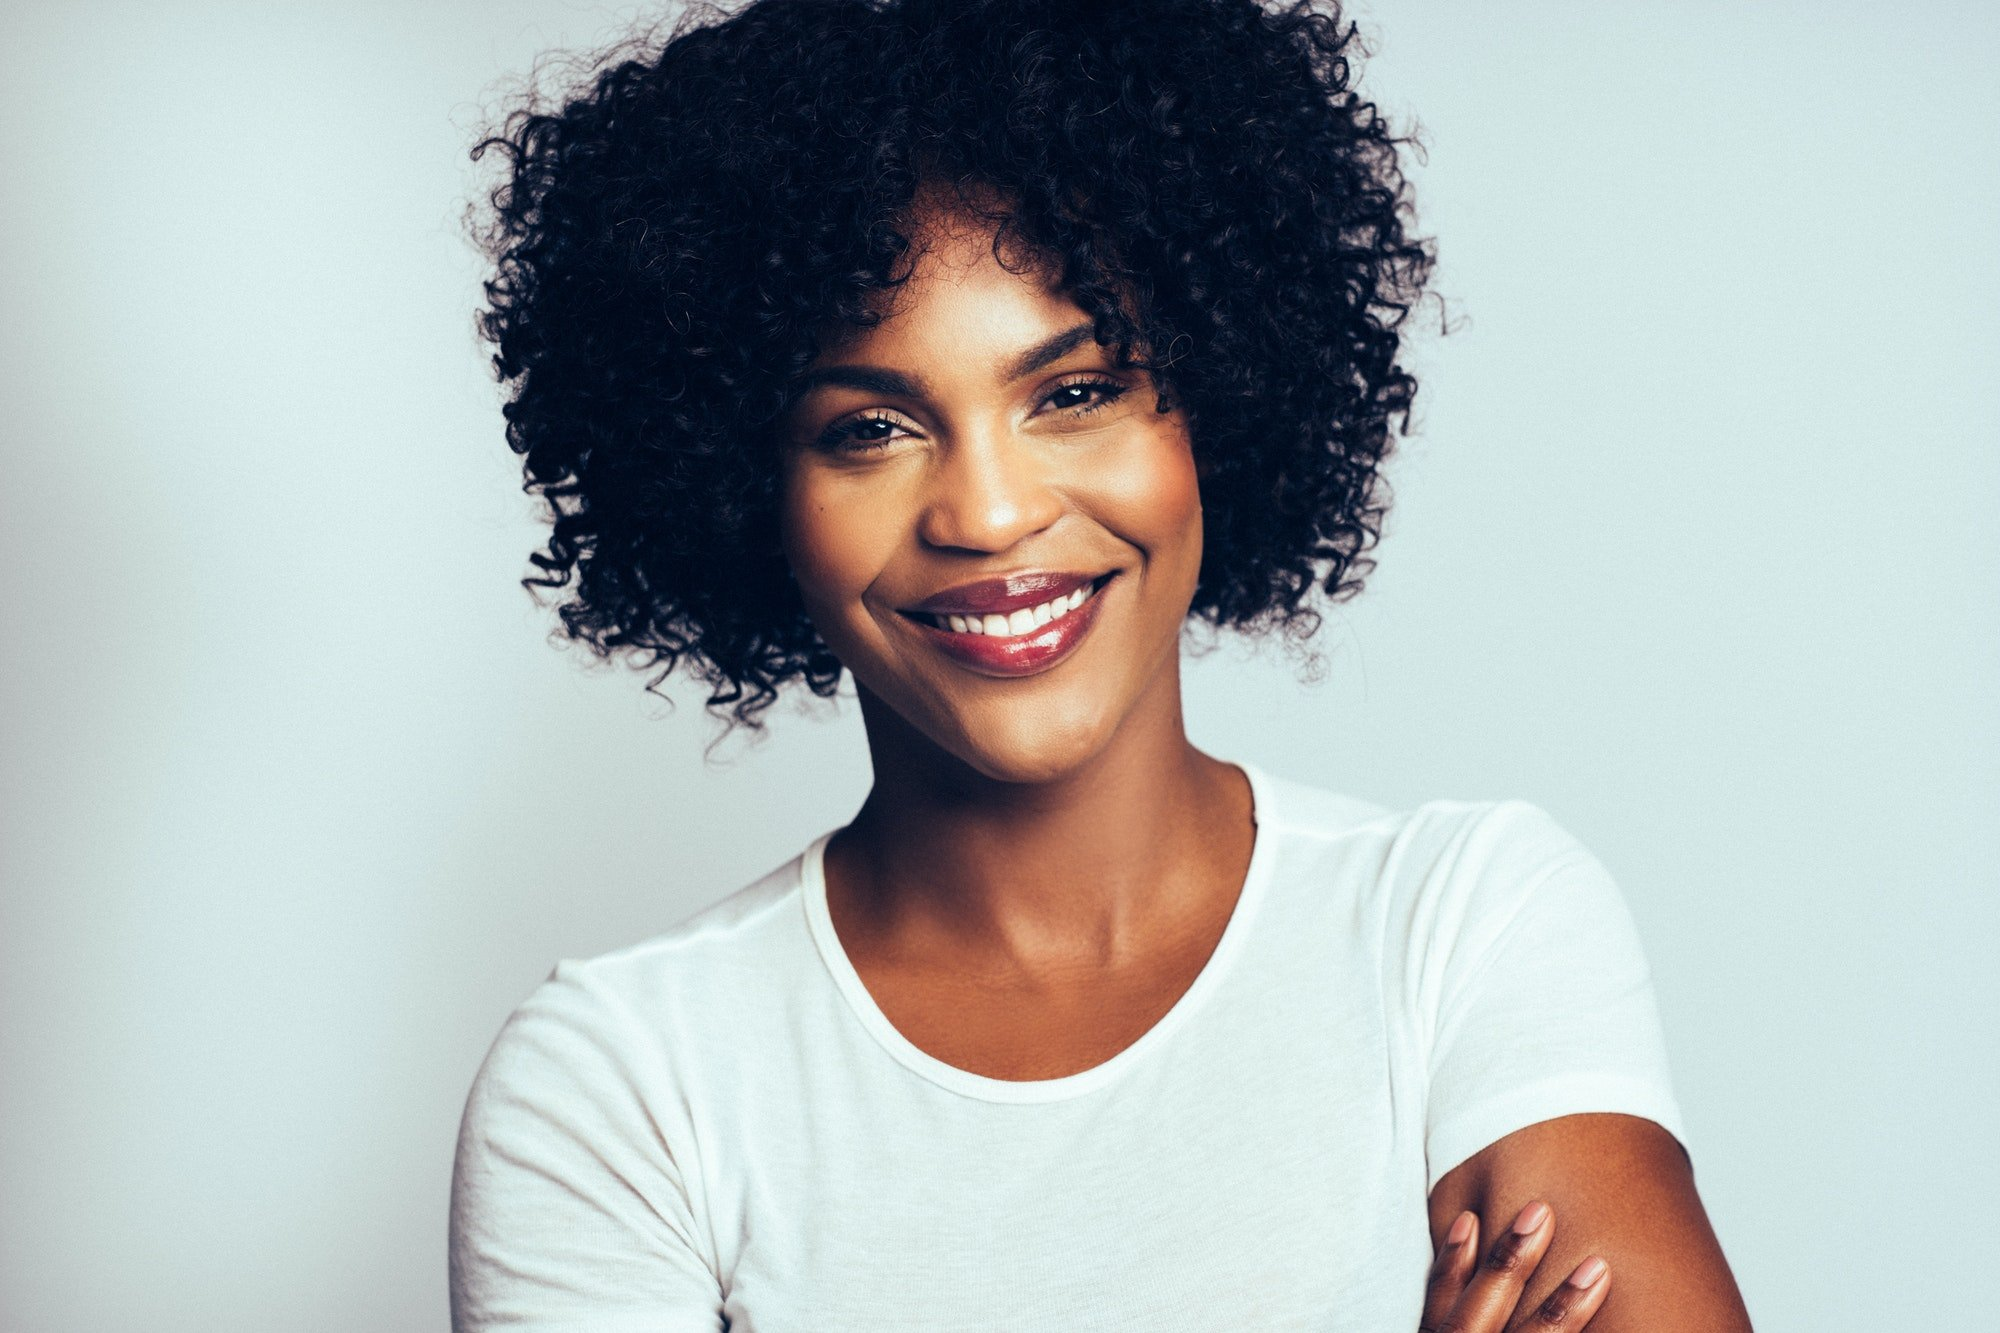 Profile of an attractive African woman against a gray background